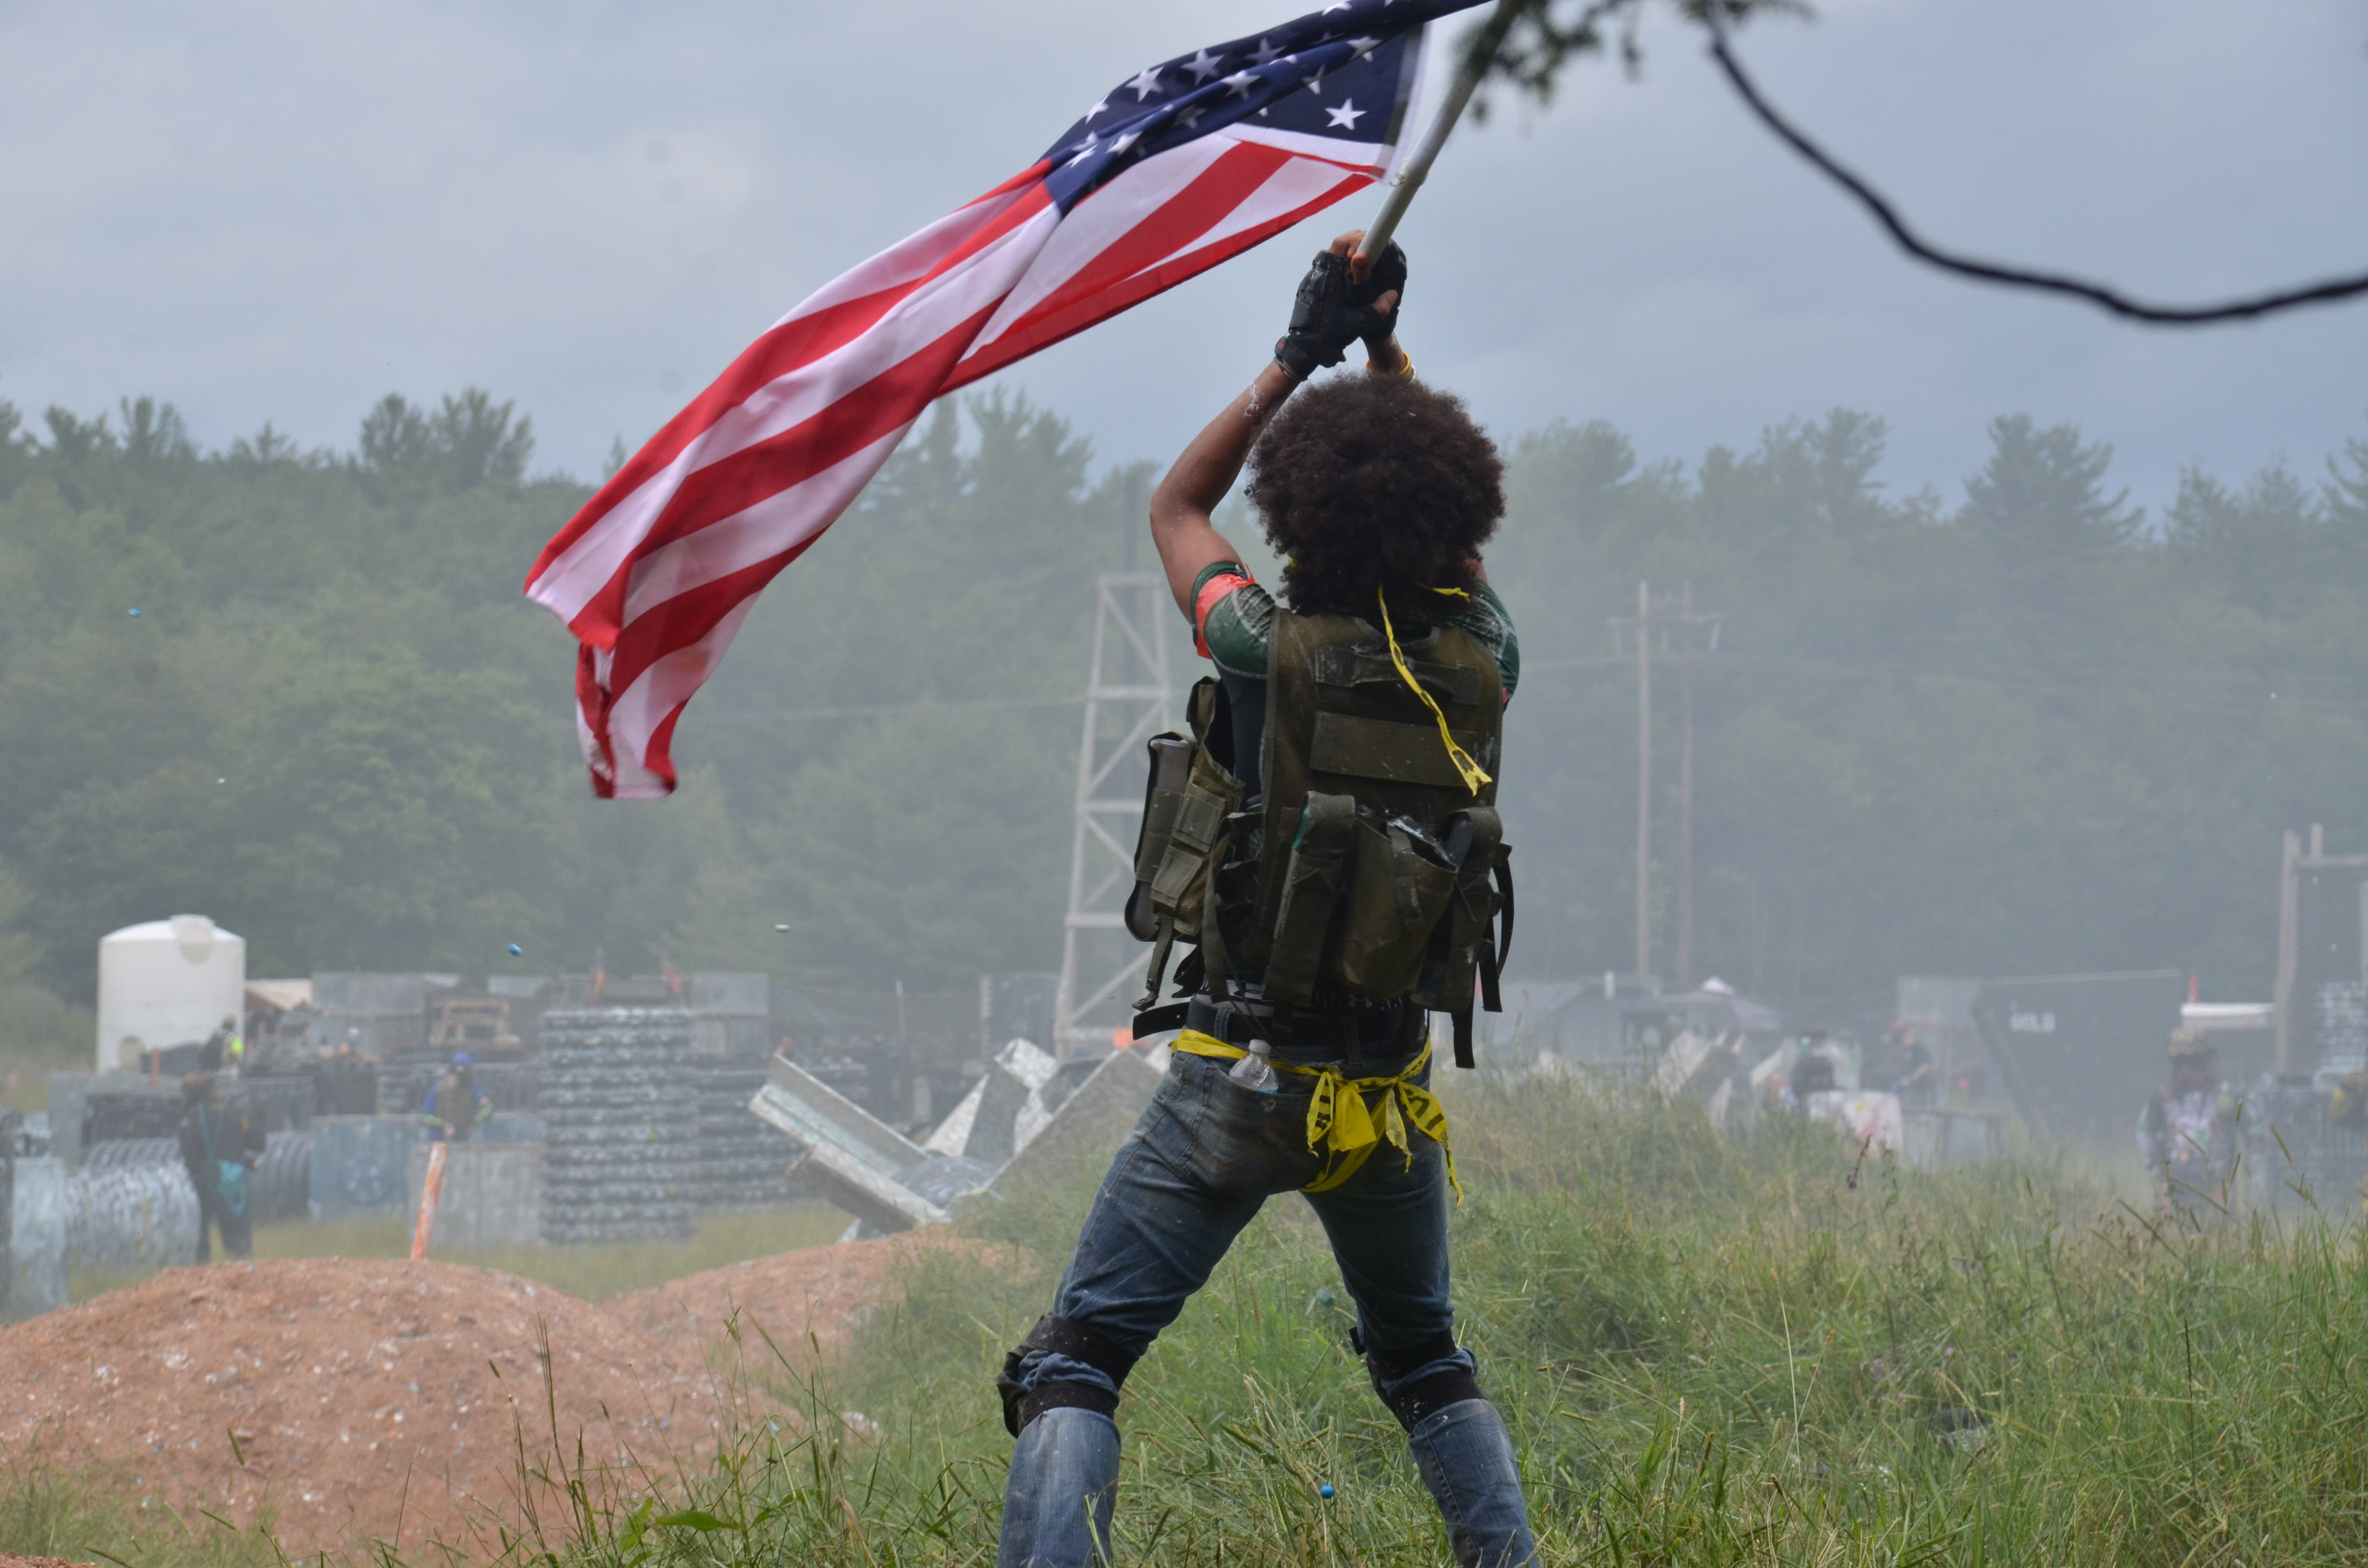 American Flag Holder for the Allied Army at the Invasion of Normandy Scenario Game at Skirmish Paintball